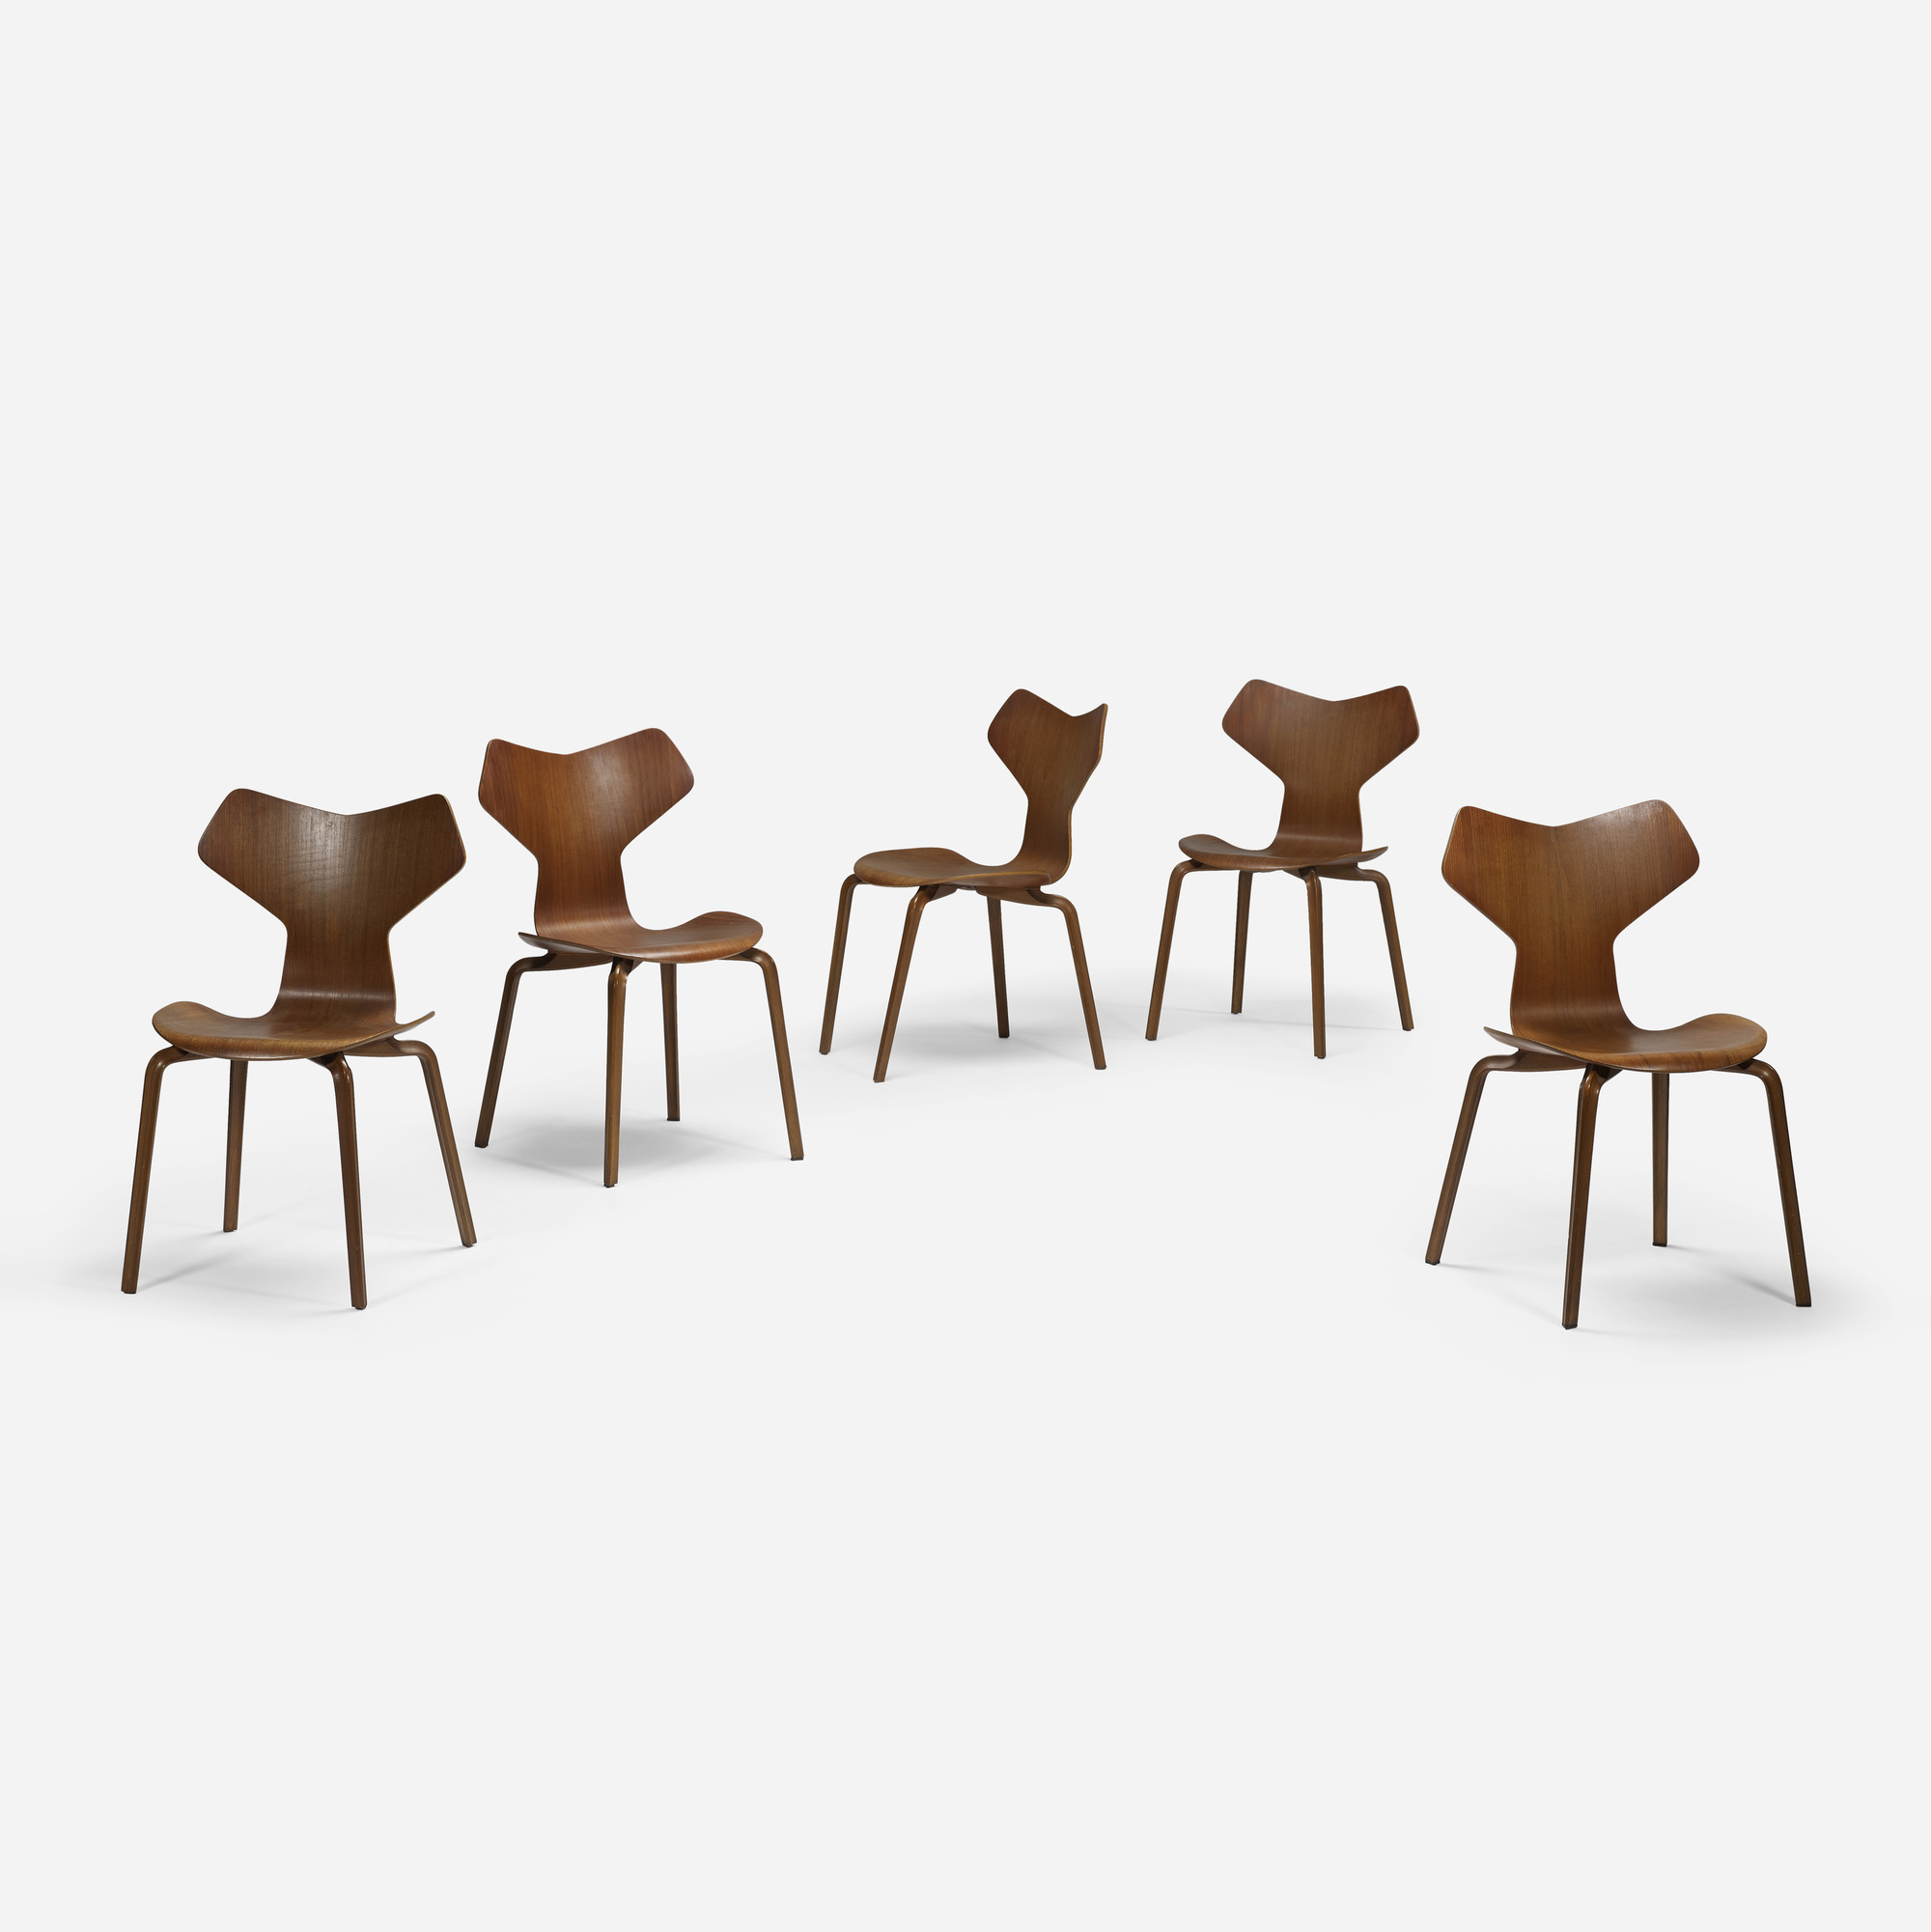 260: Arne Jacobsen / Grand Prix chairs, set of five (2 of 4)